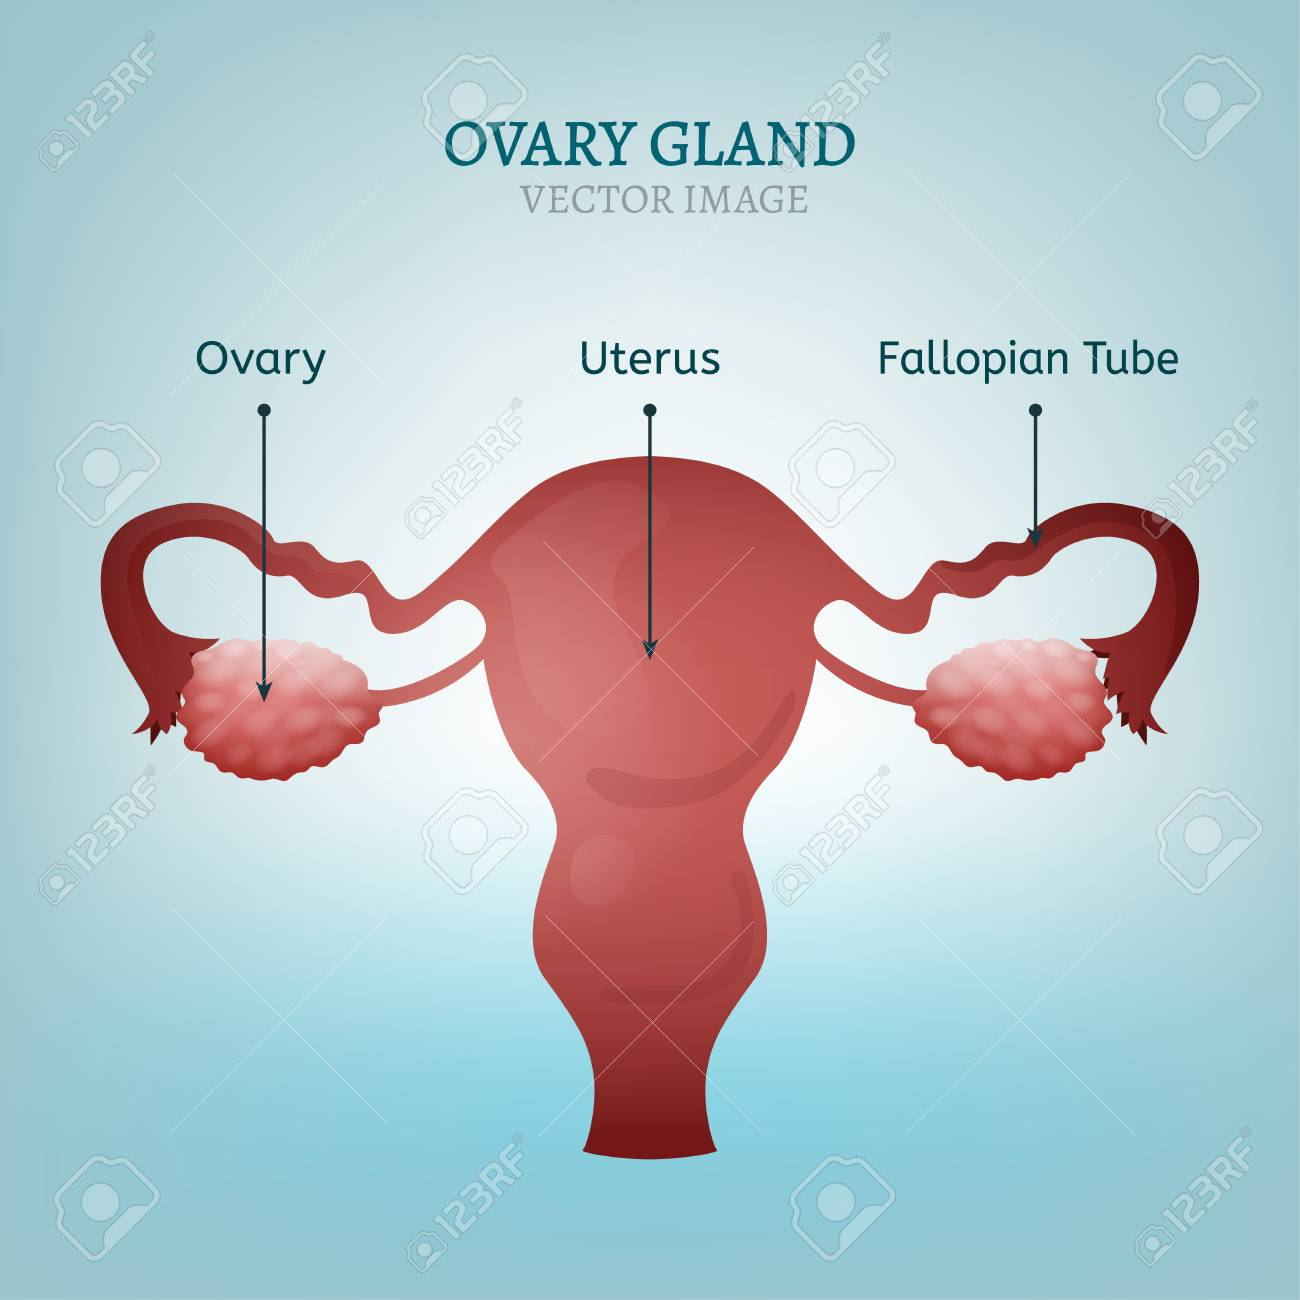 hight resolution of female reproductive system uterus ovary glands and fallopian tubes vector illustration isolated on